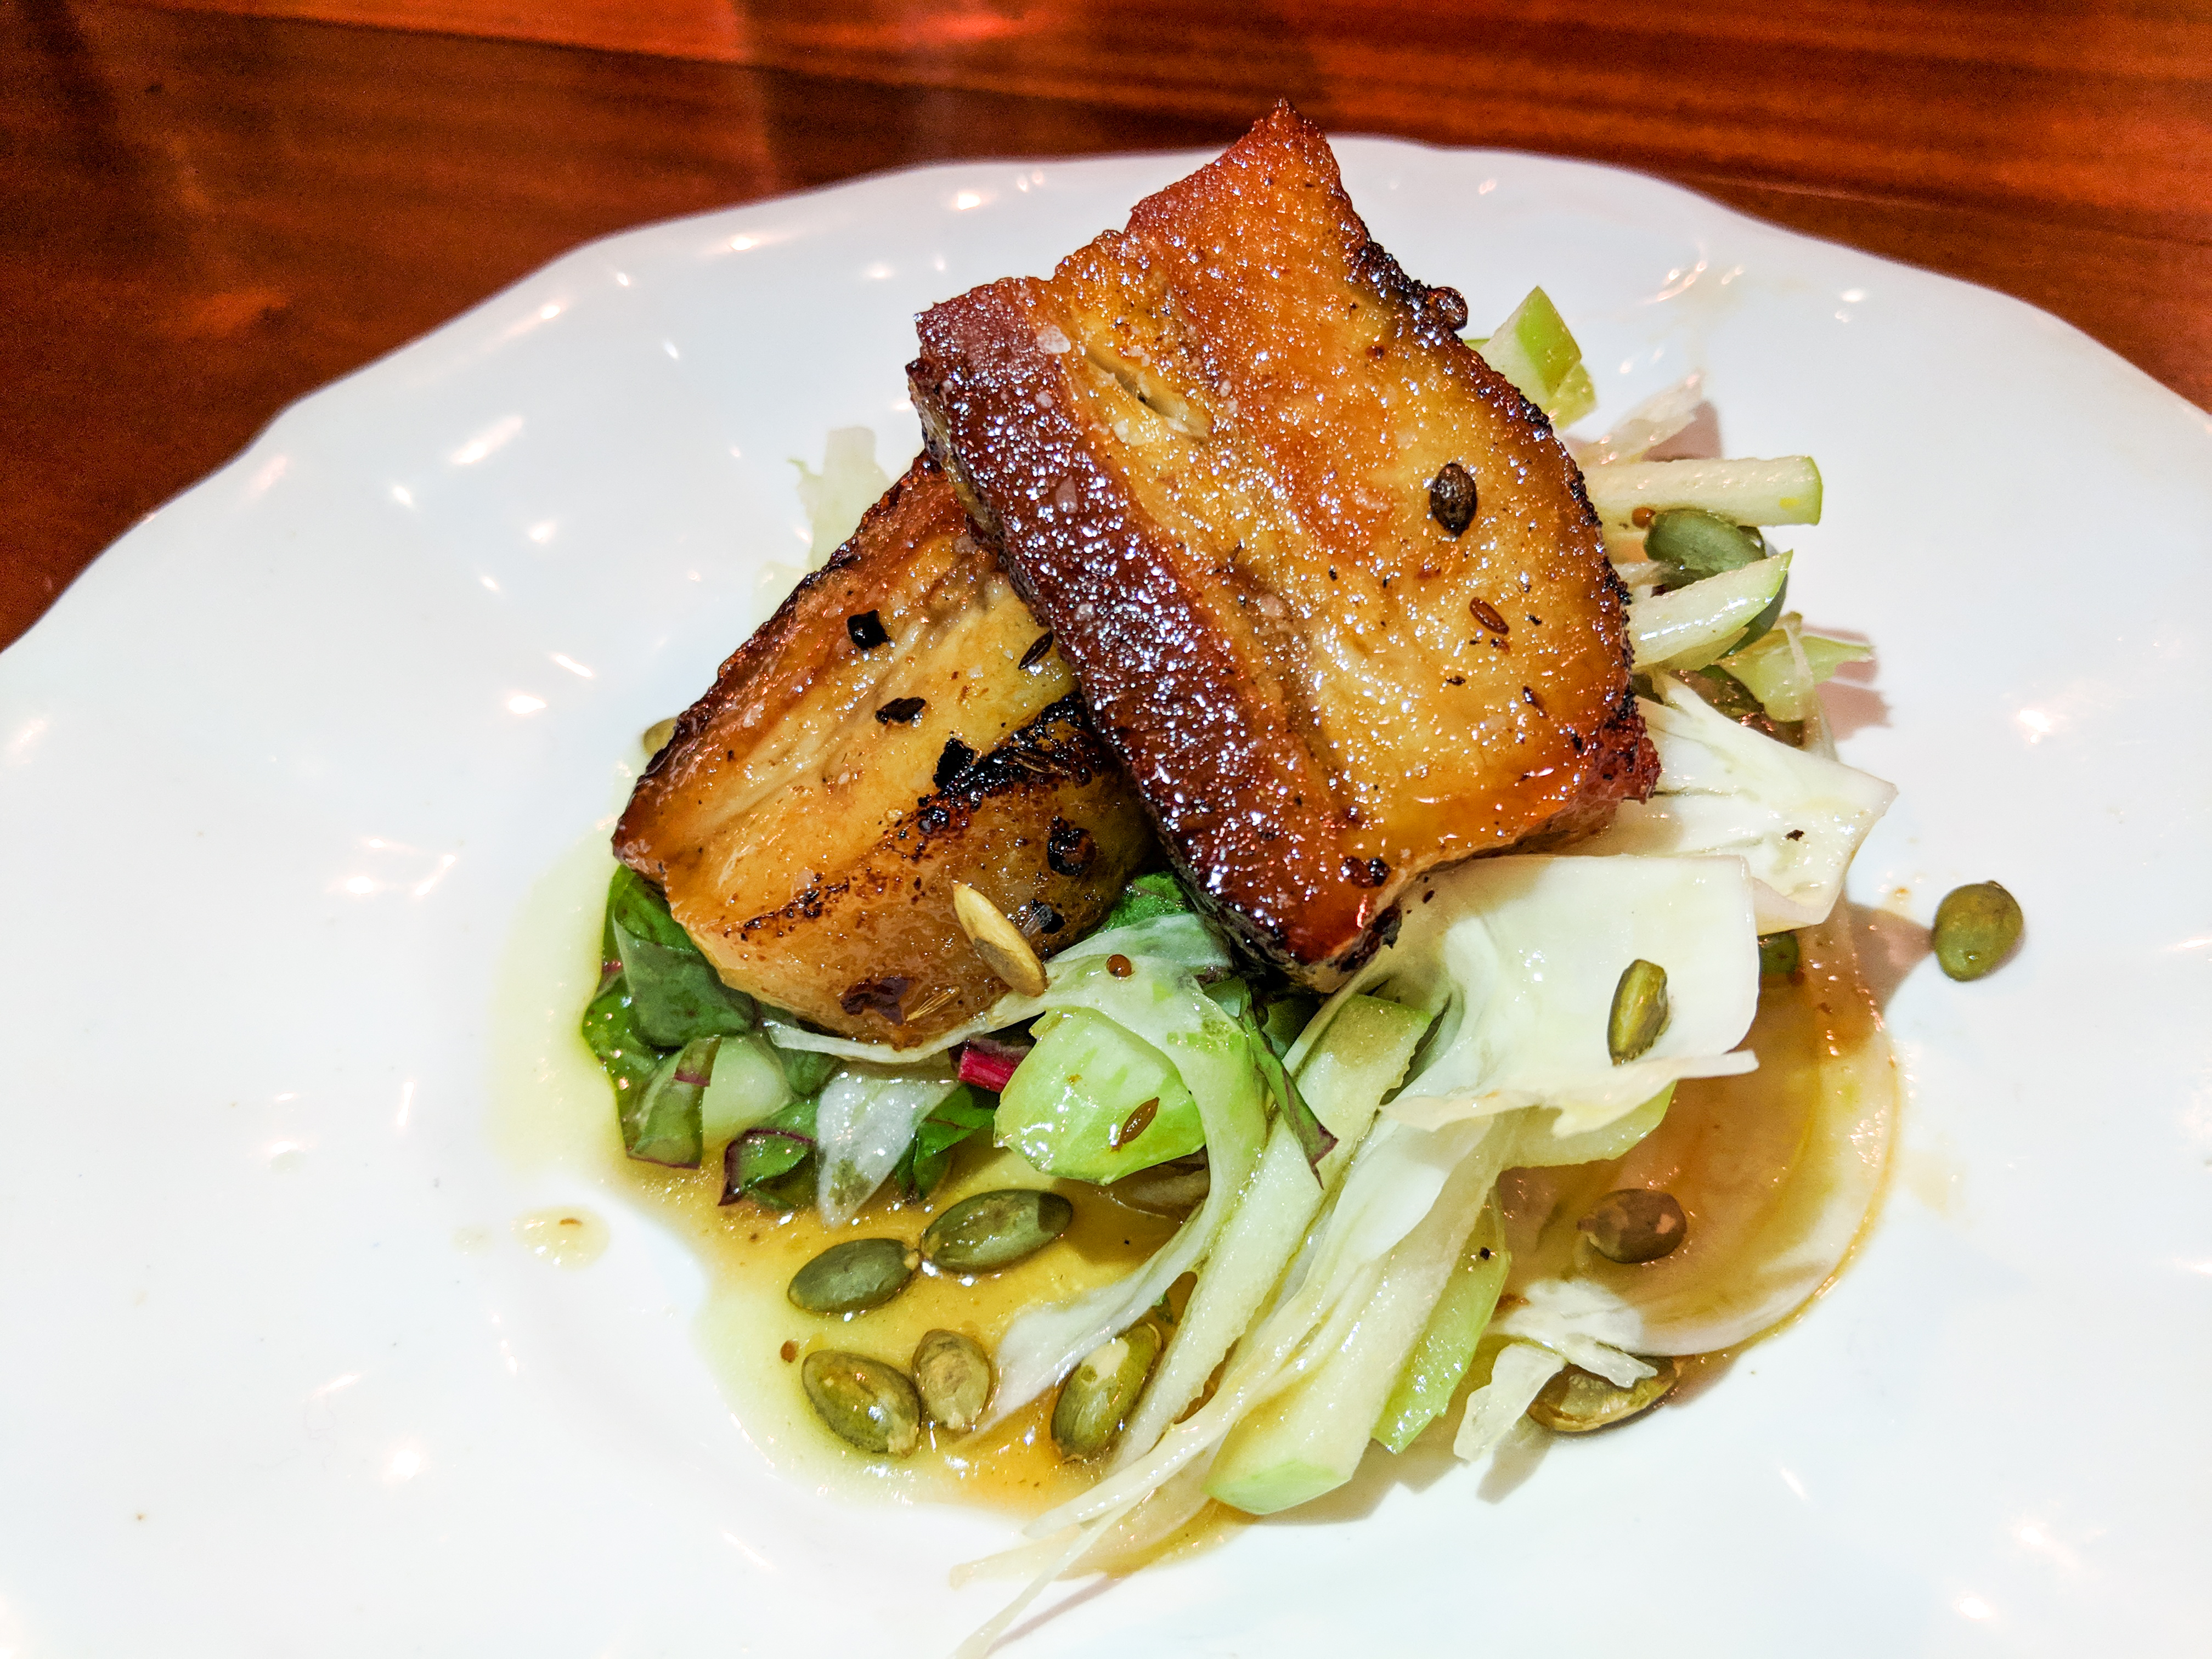 Two slabs of pork belly sit on a white plate with greens and other accoutrements. The plate is on a glossy wood bar.